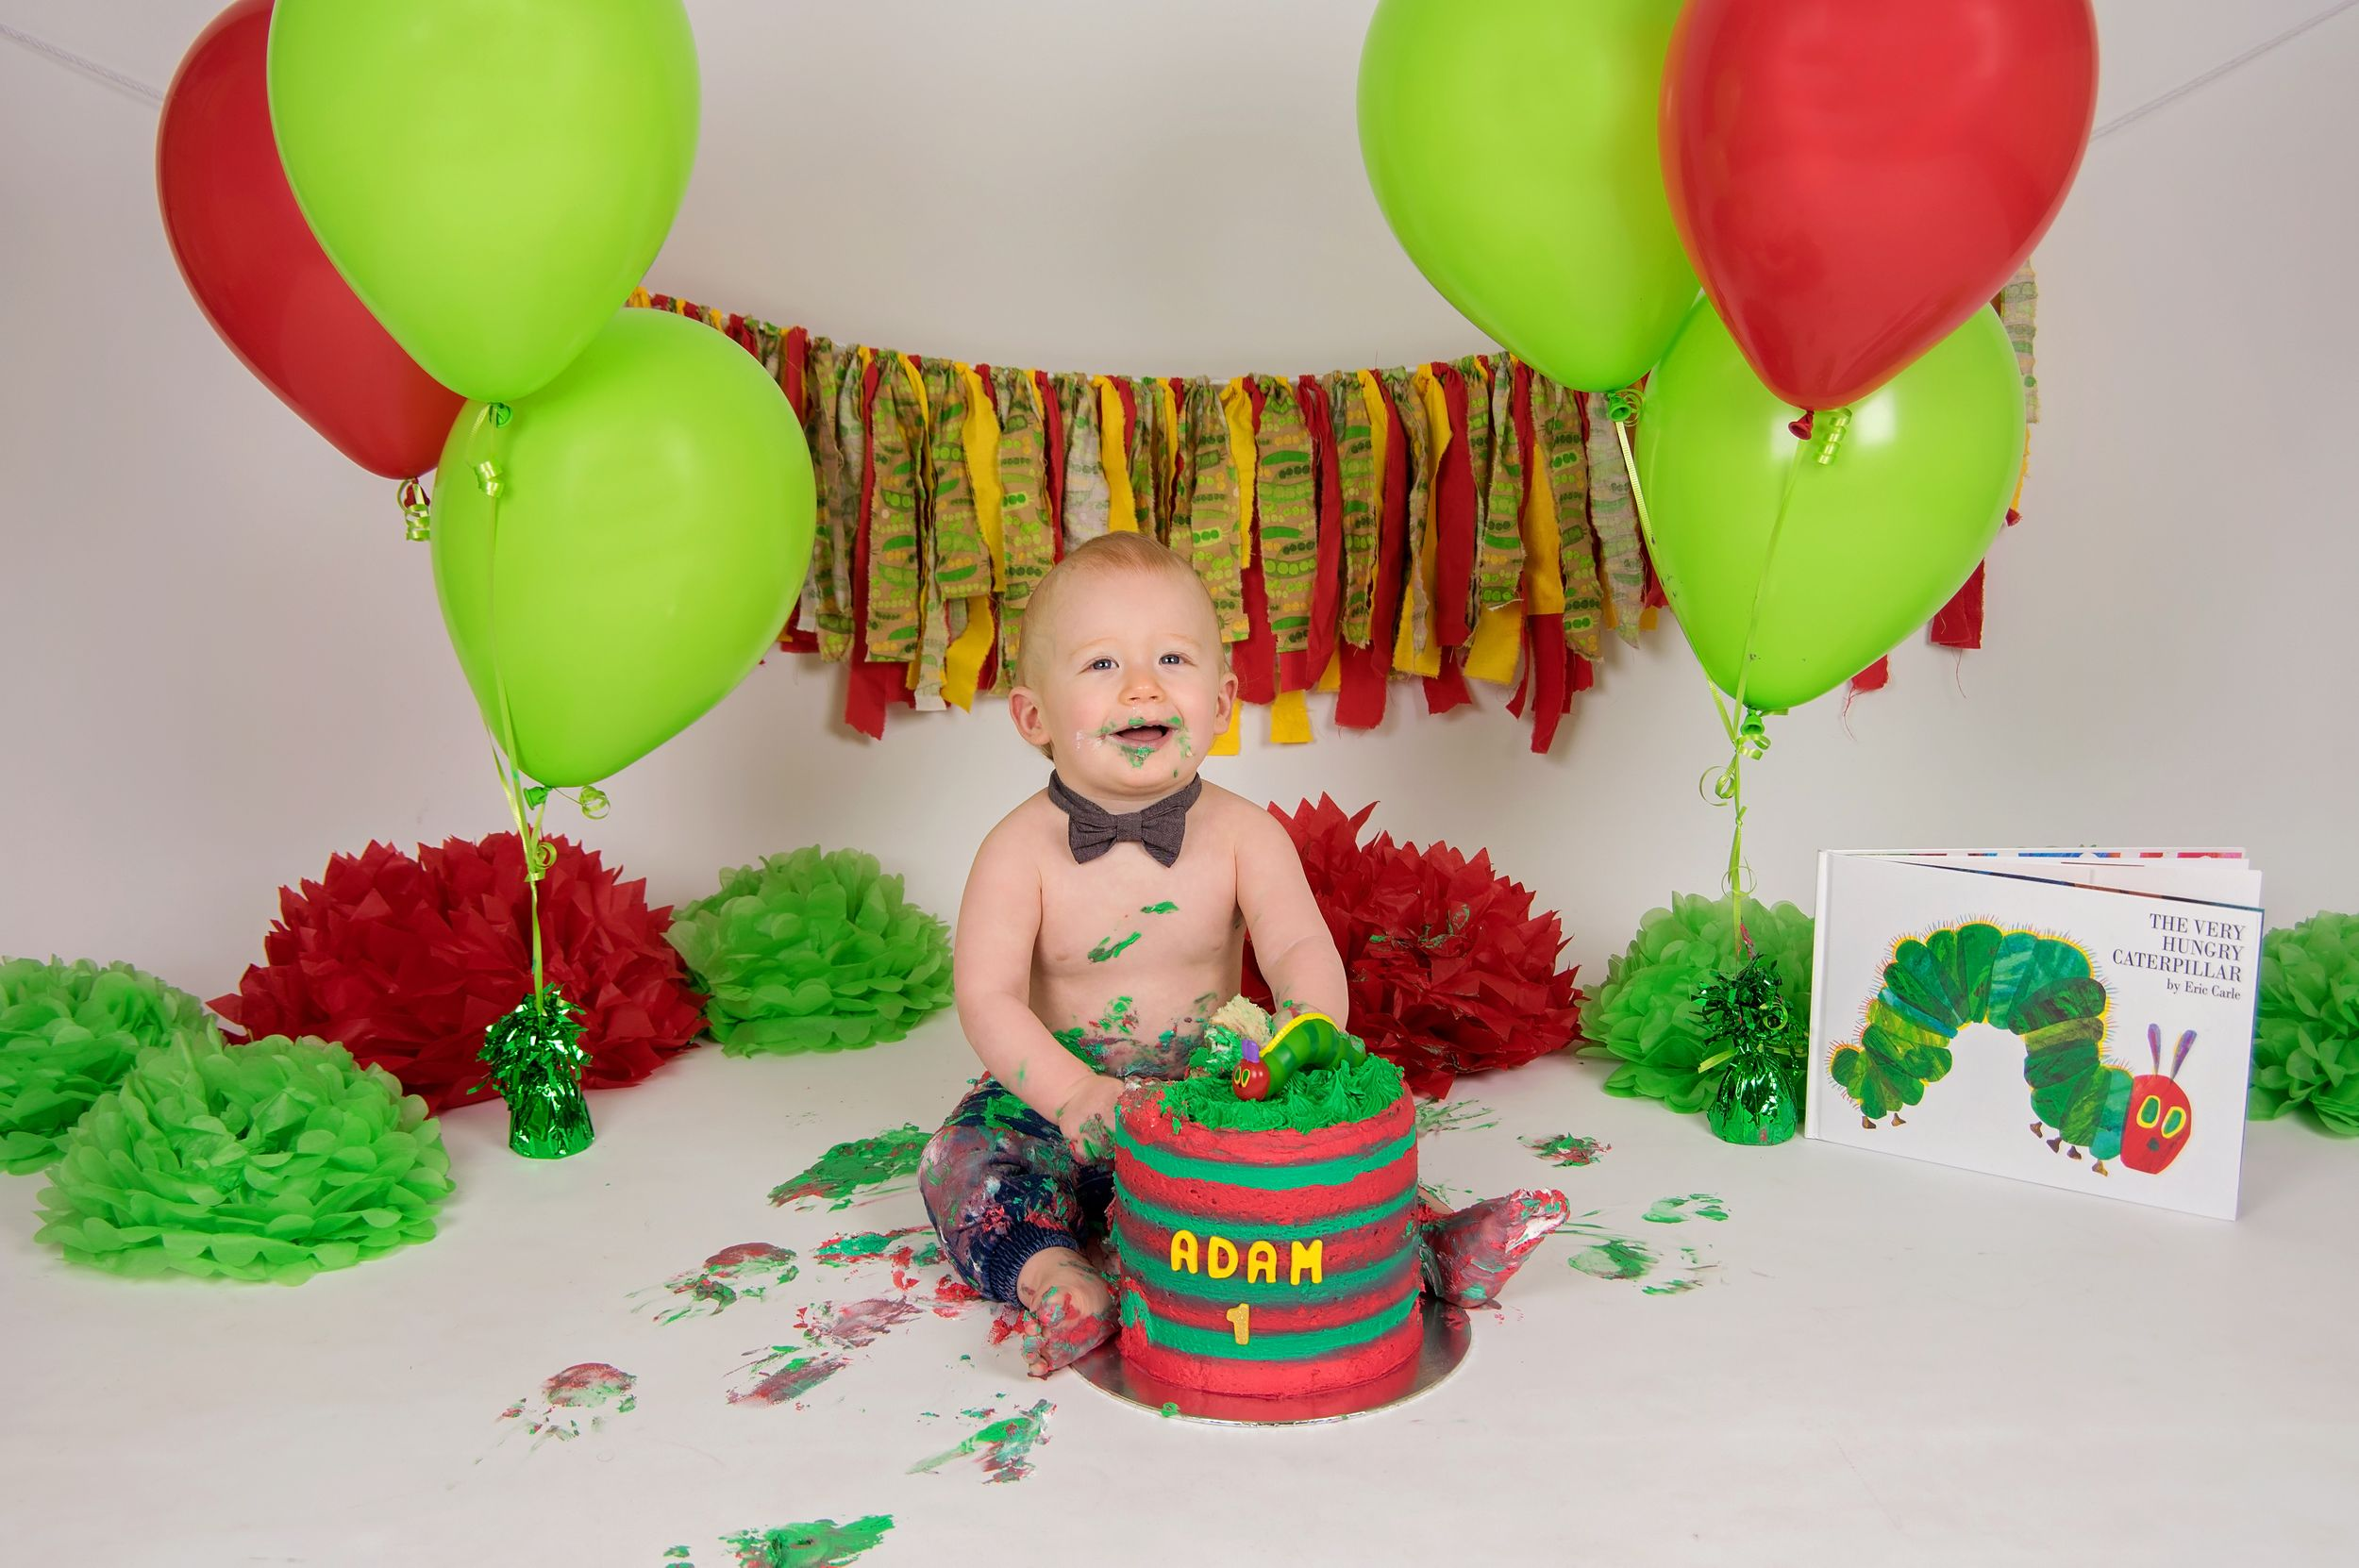 baby eating cake with red and green theme and decorations